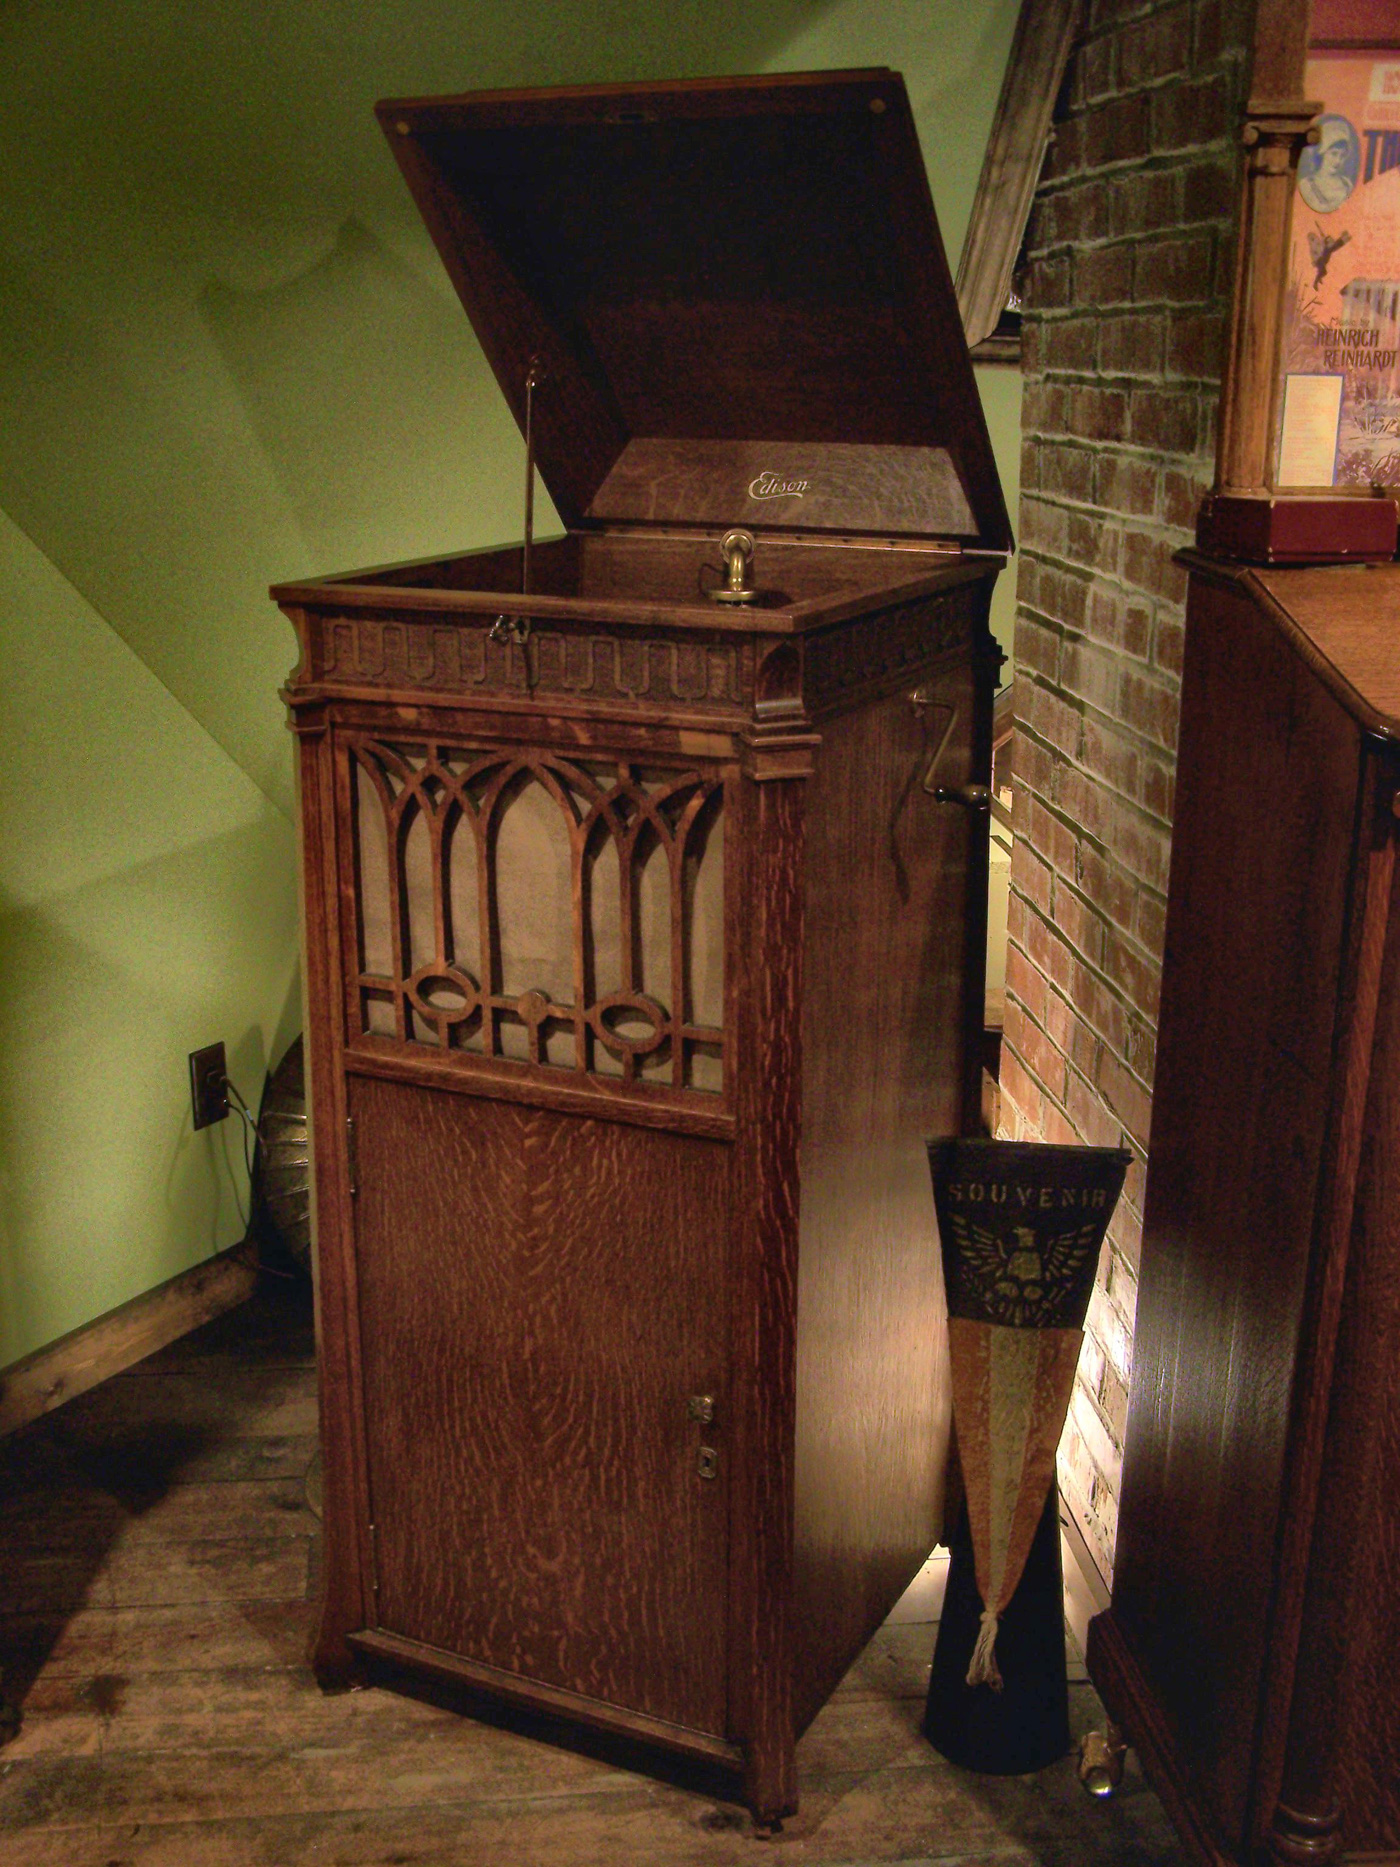 How Much Is An Antique Record Player Cabinet Worth Furniture - Antique  Record Cabinet Value Www - How Much Is An Antique Record Player Cabinet Worth Antique Furniture